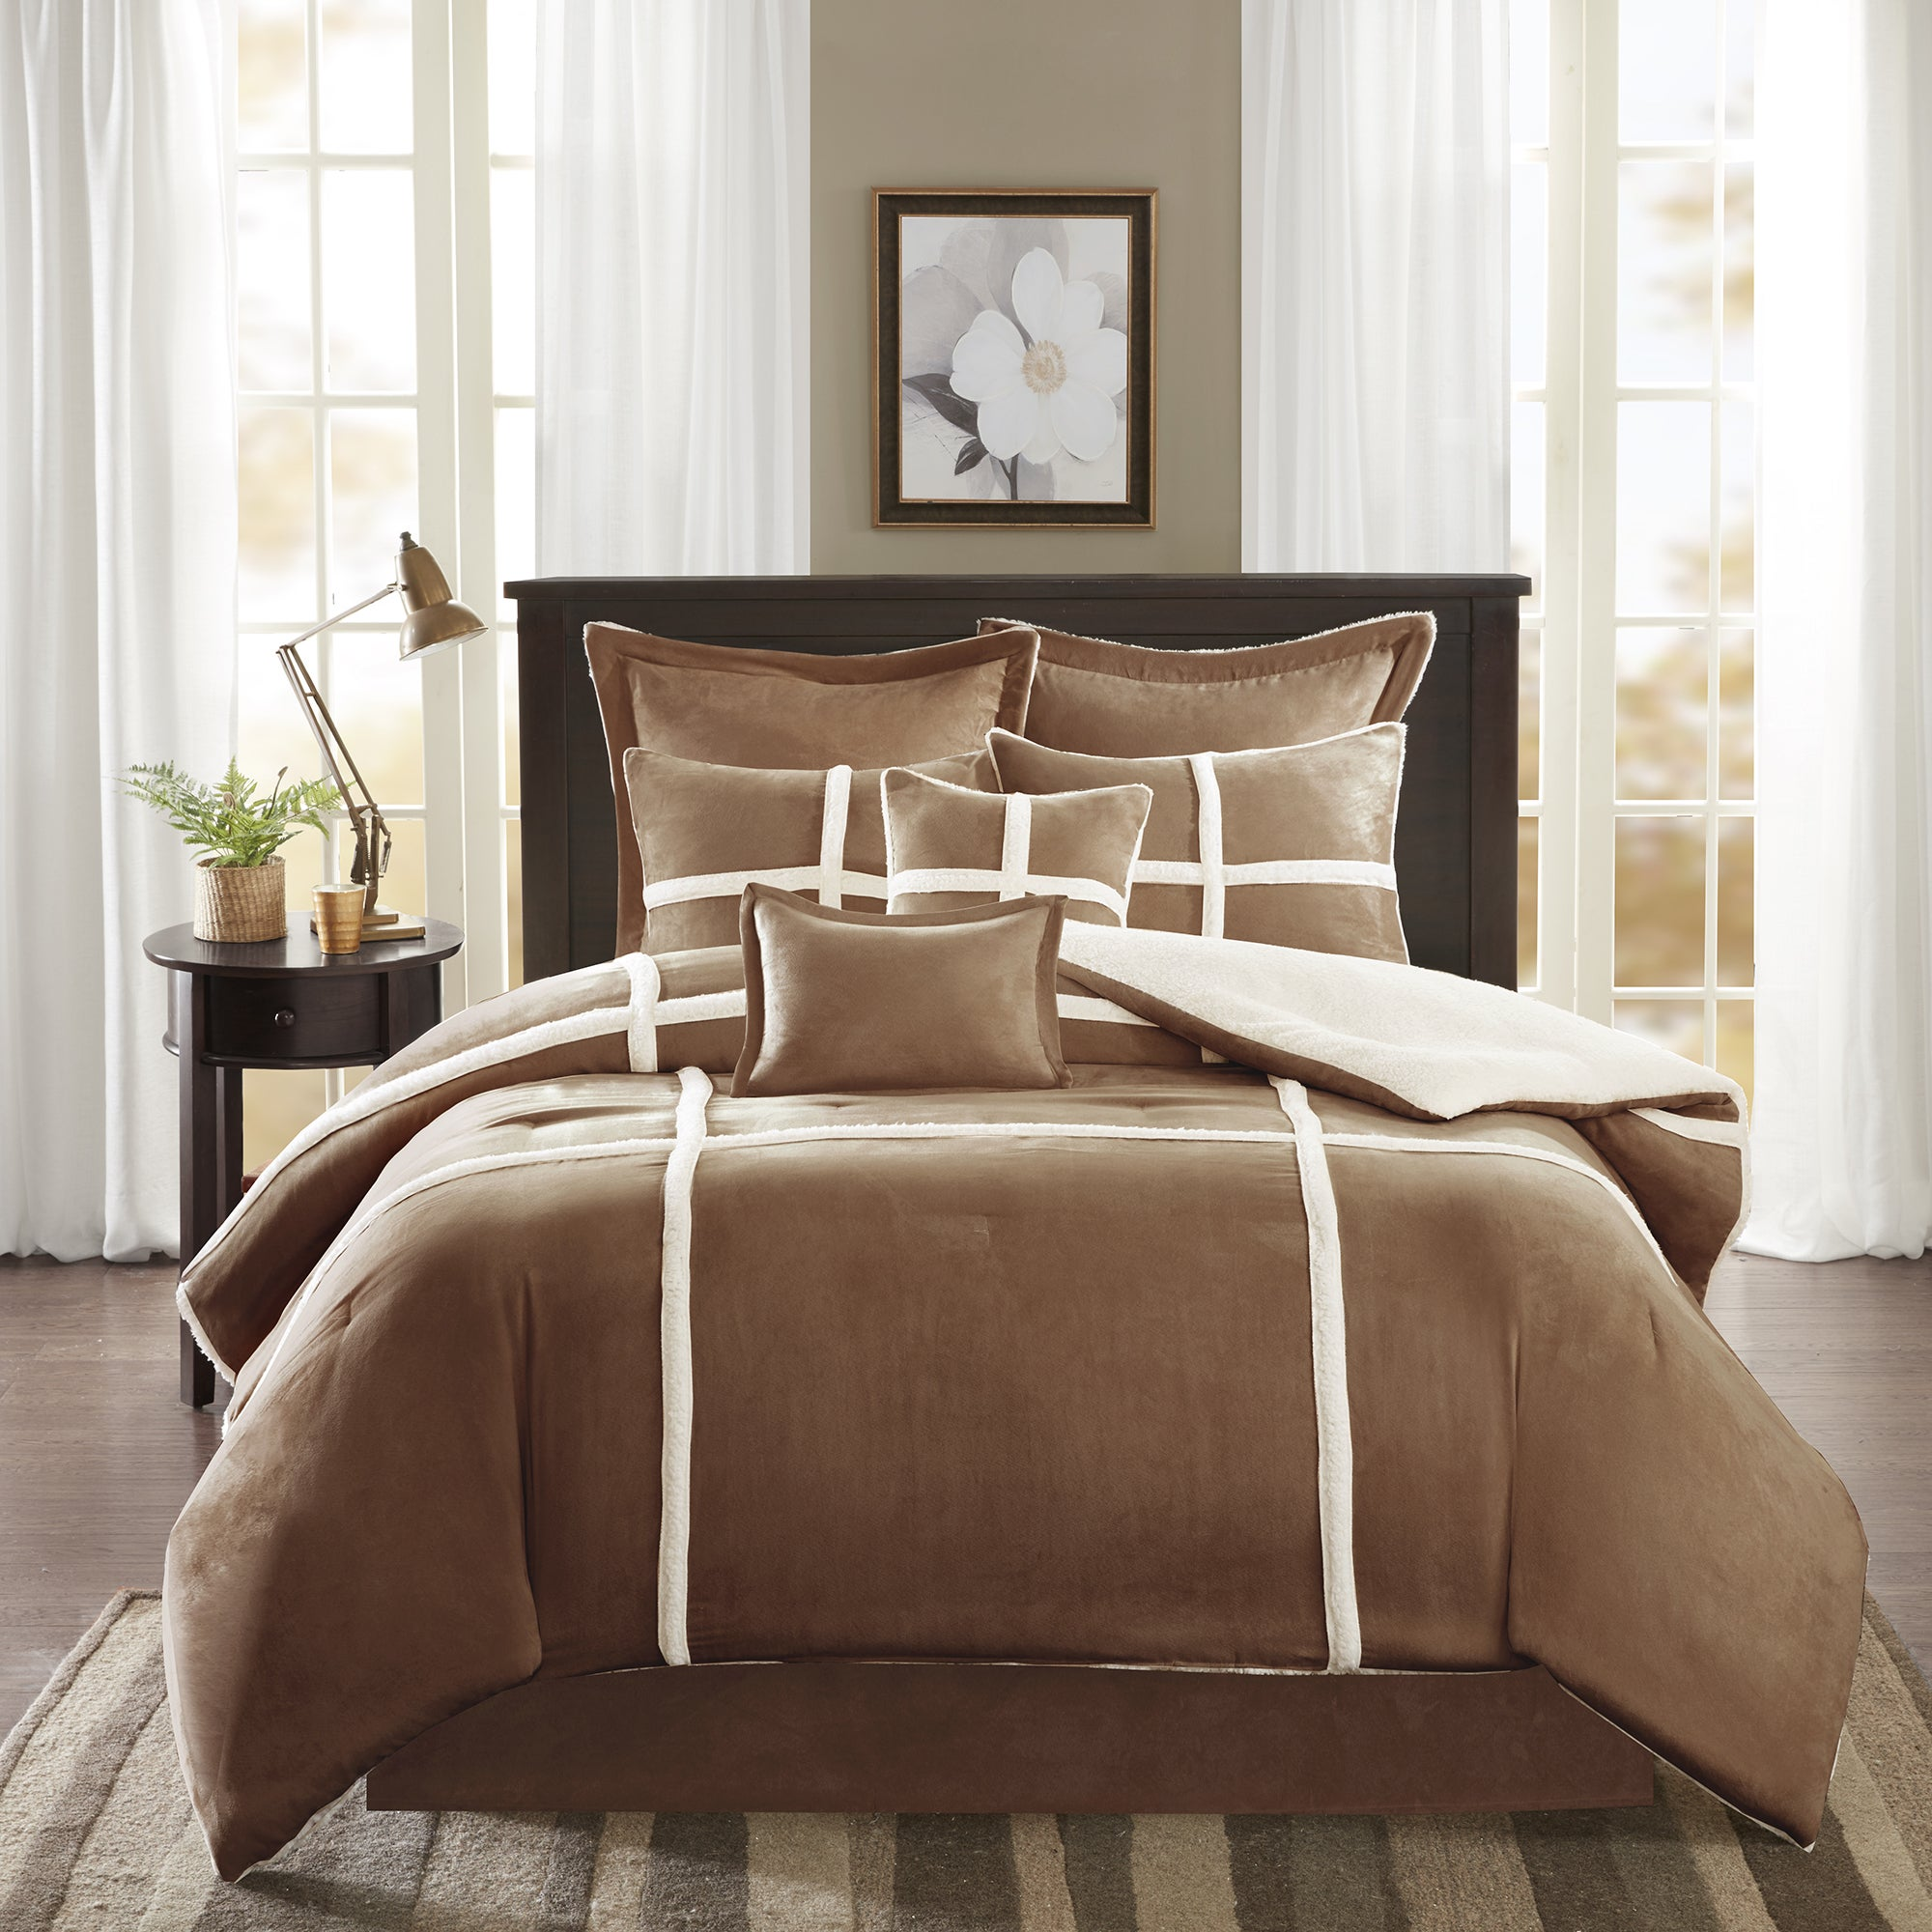 wid ballroom qlt king and p prod set teal suede sheet piece home hei pillows chic comforter spin included size decorative shams